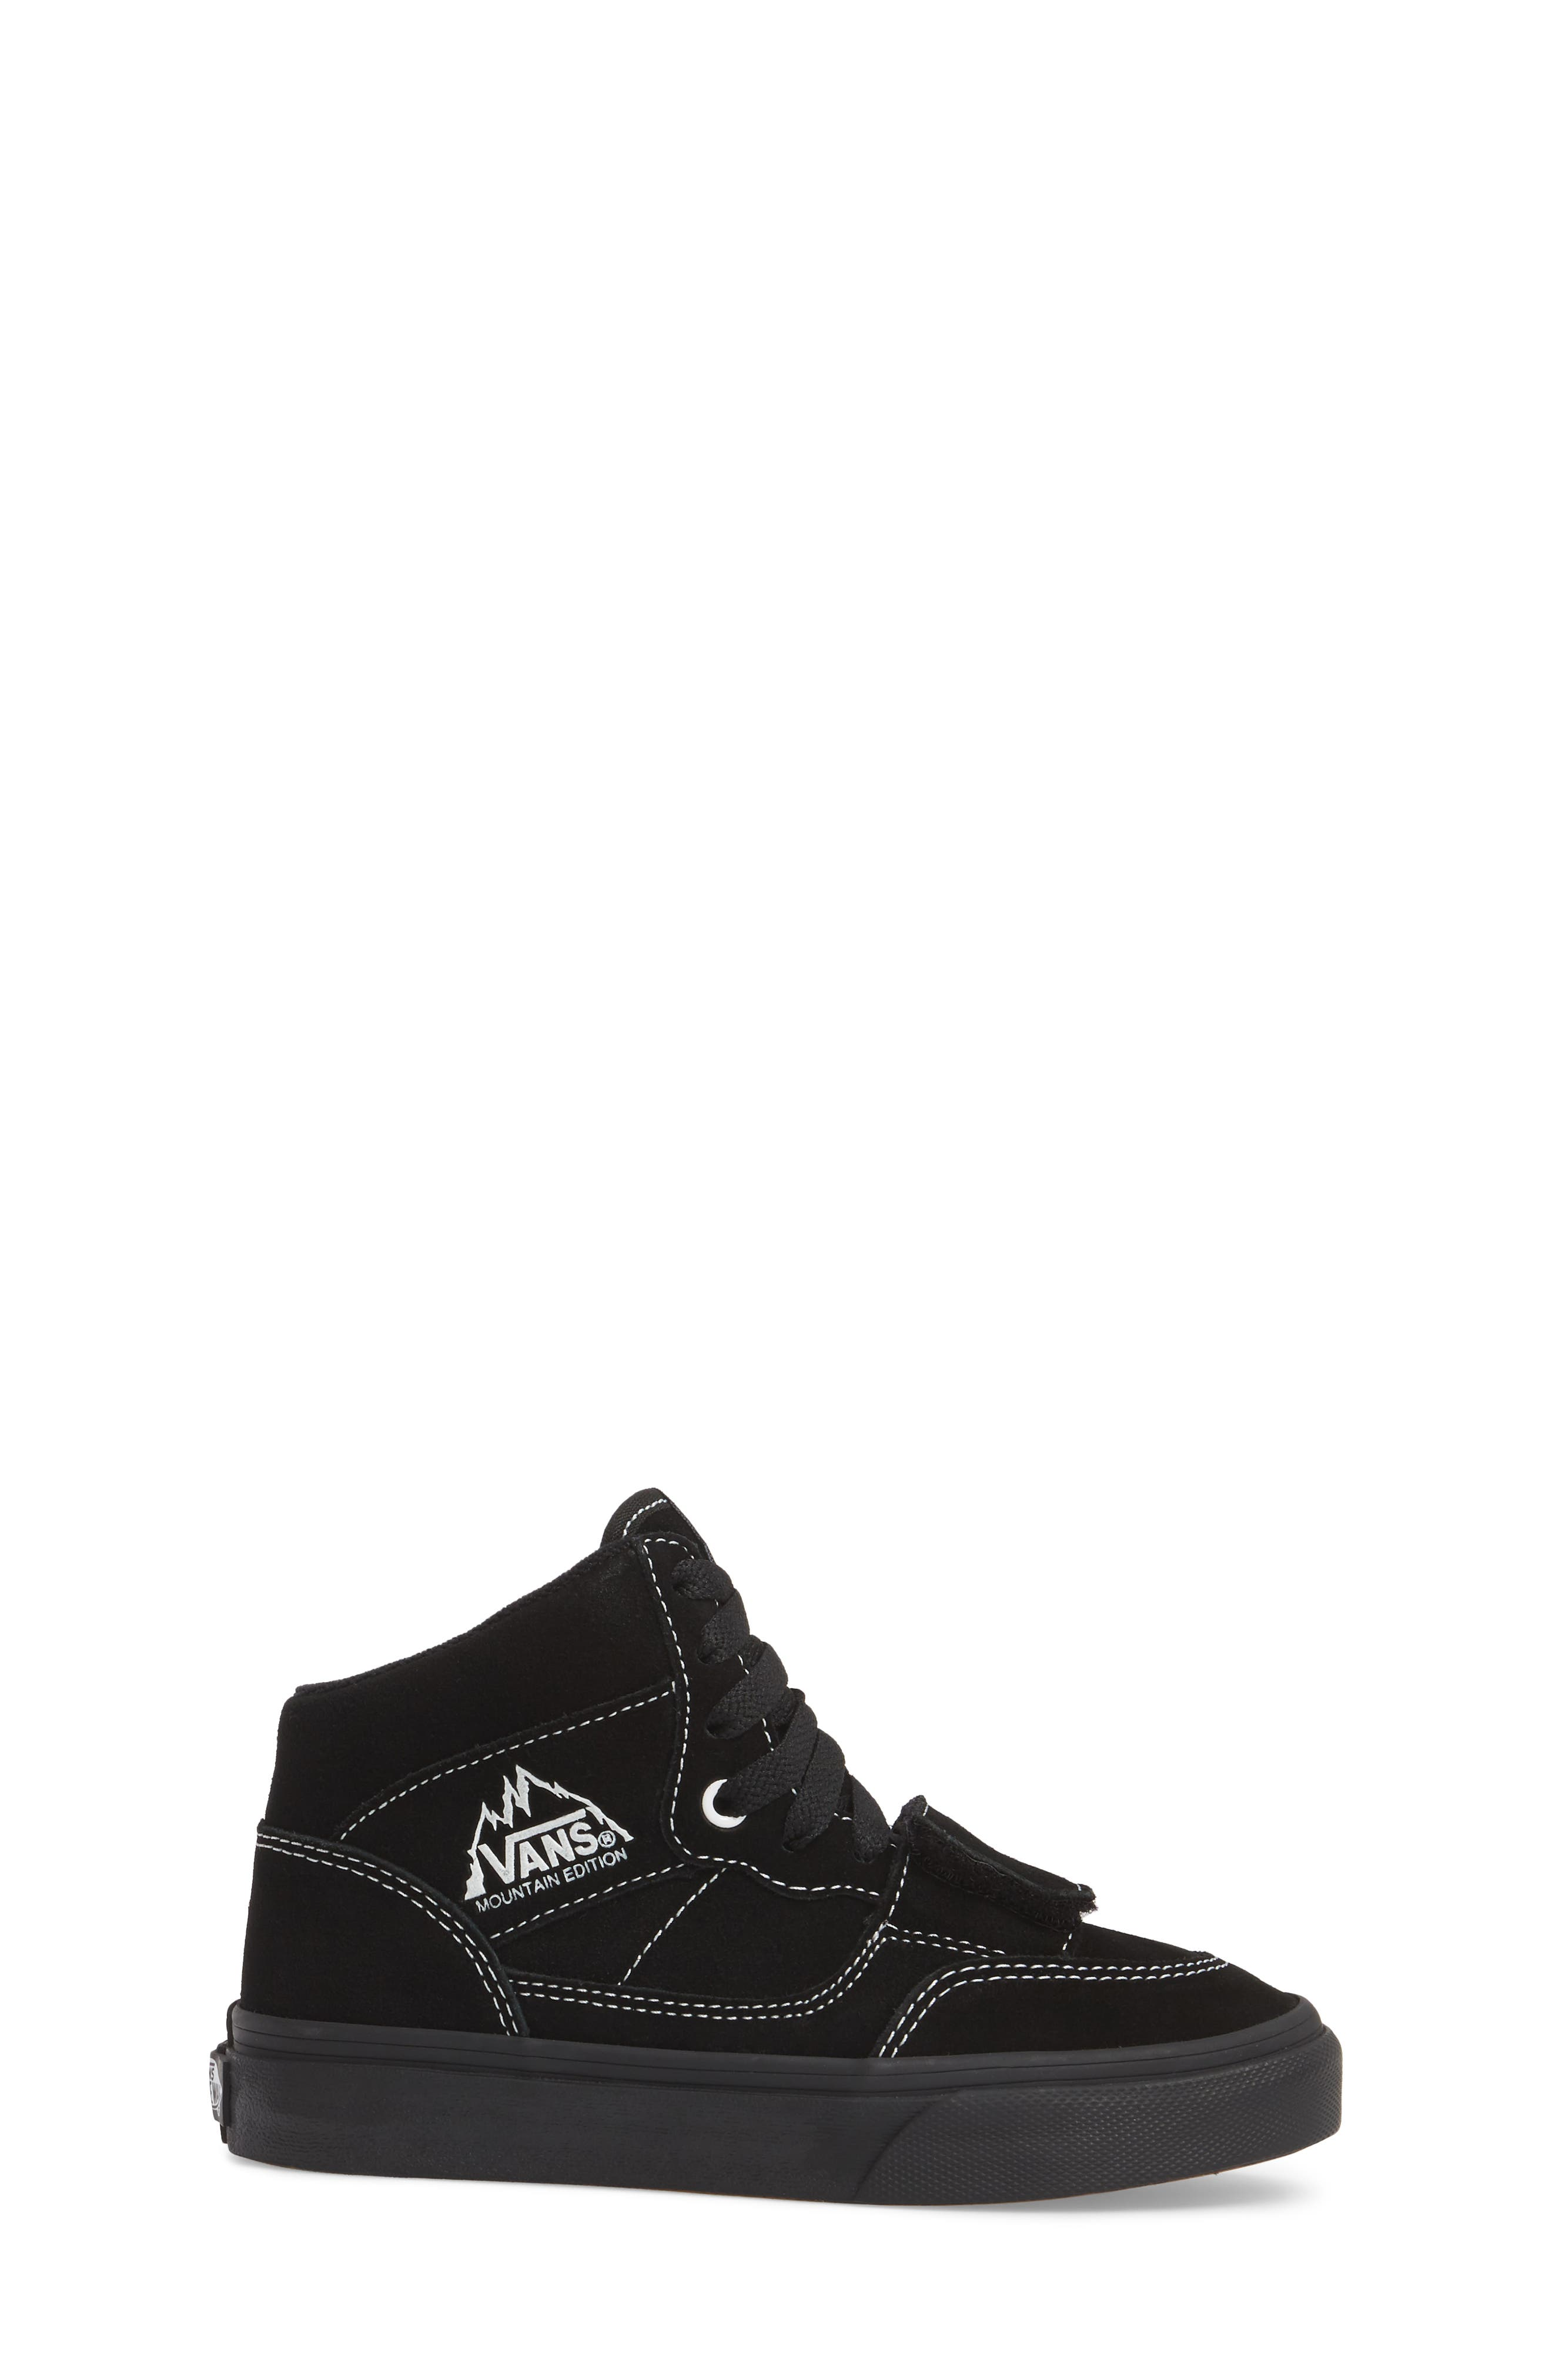 Mountain Edition Mid Top Sneaker,                             Alternate thumbnail 5, color,